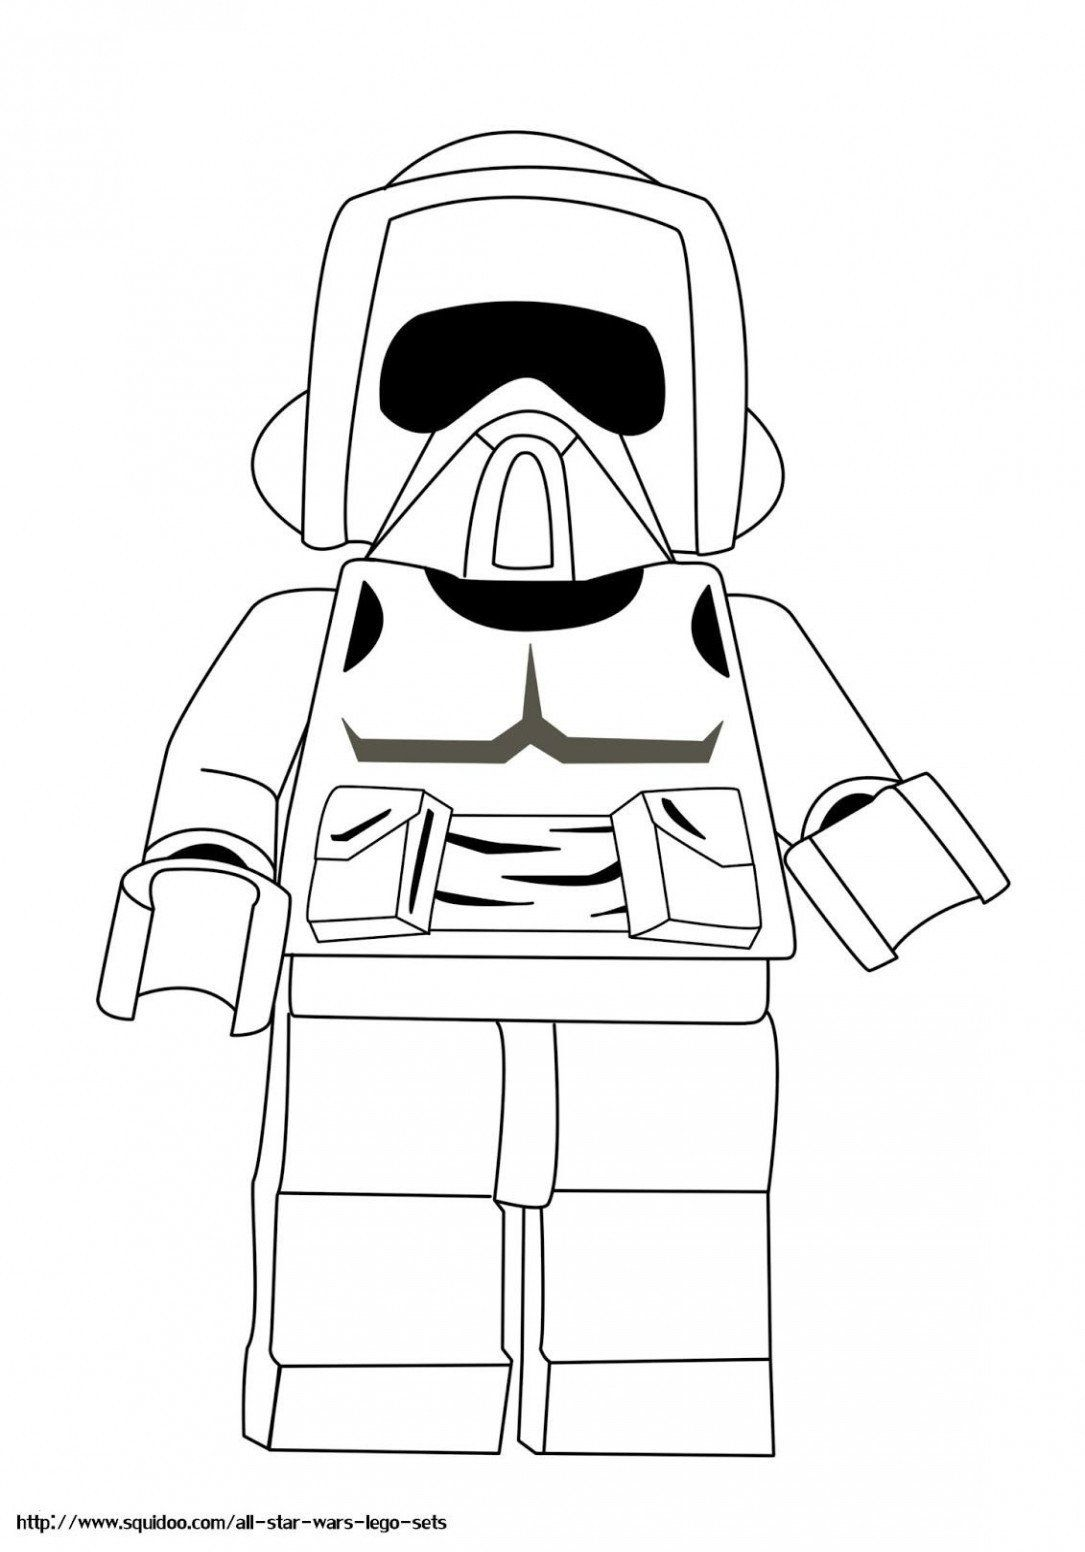 Walking Dead Coloring Pages New Coloring Pages For Kids Pdf Walking Dead Colouring Teens Free Adul Lego Coloring Pages Star Wars Colors Star Wars Coloring Book